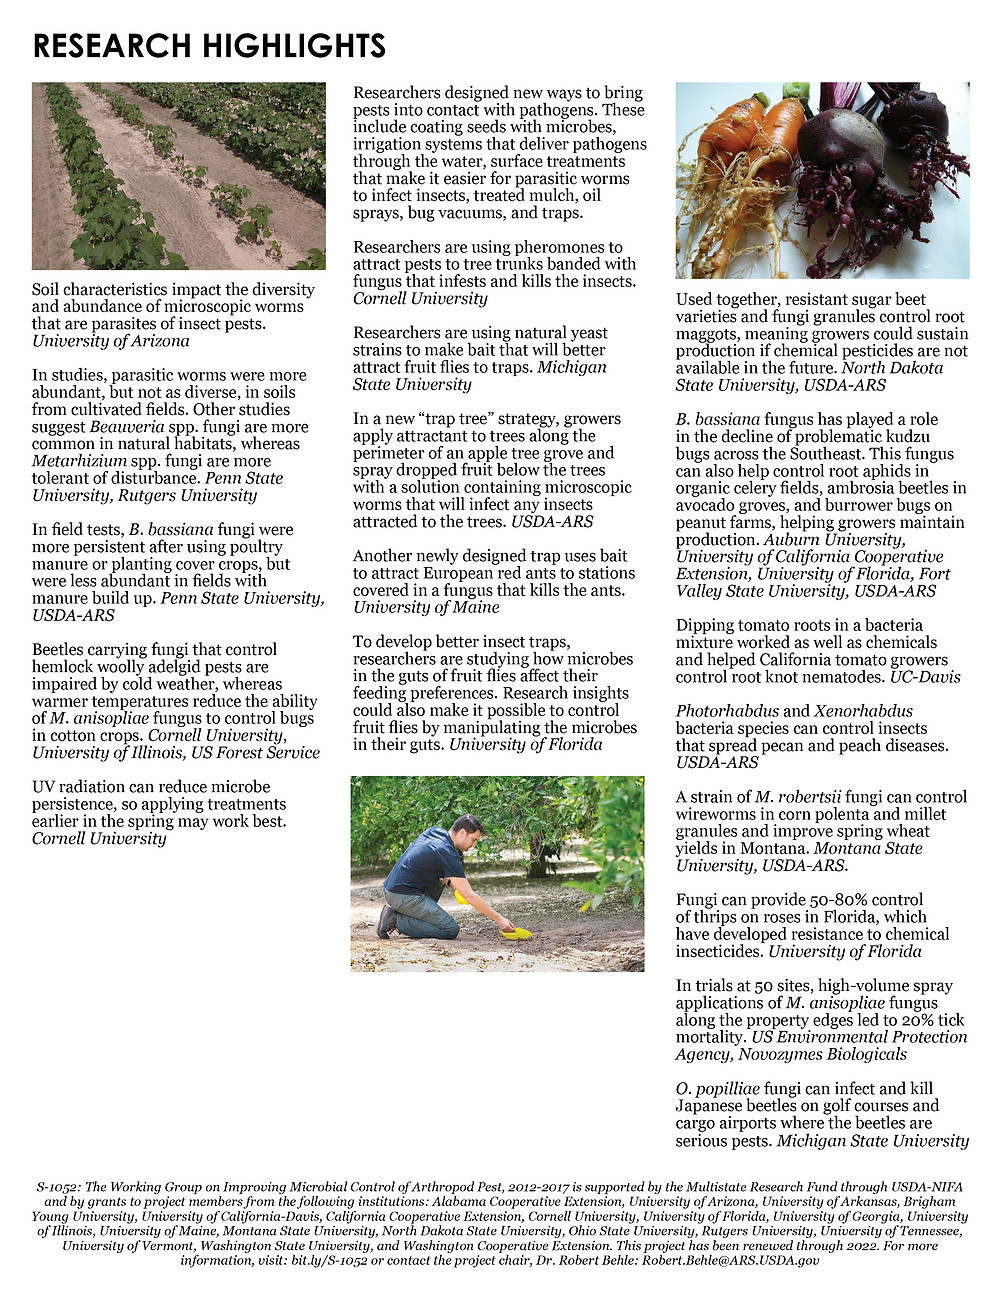 Microbial Control of Insect Pests. Click to view/download a PDF of the Impact Statement.